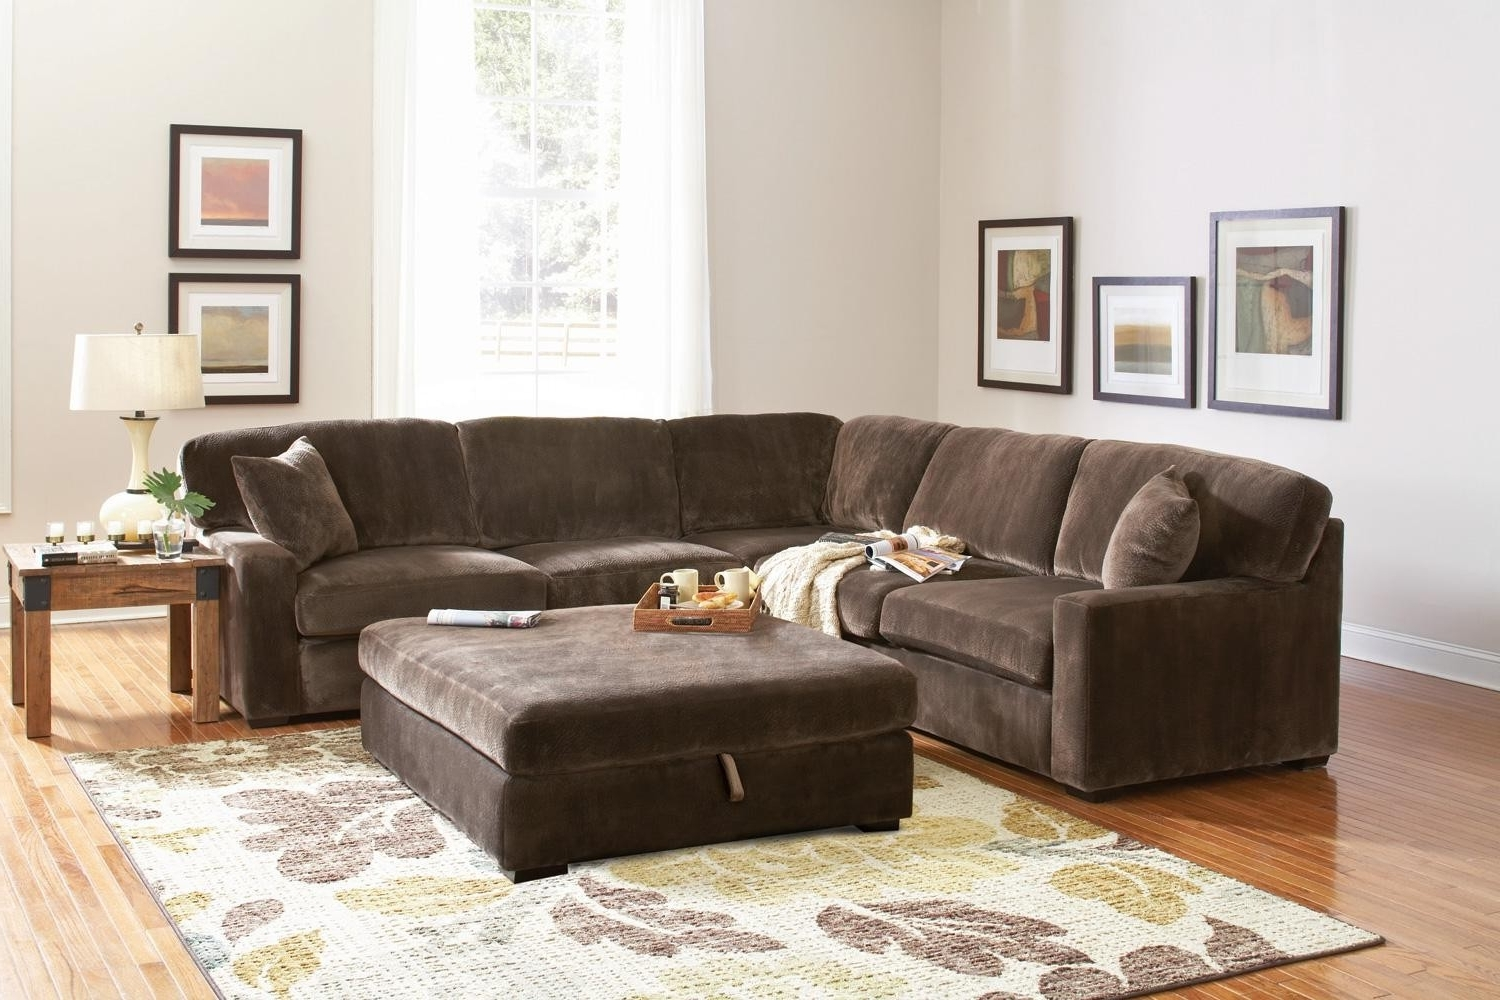 Most Current Sectional Sofa Design: Simple Sectional Leather Sofas With Pertaining To Sectionals With Oversized Ottoman (View 7 of 20)